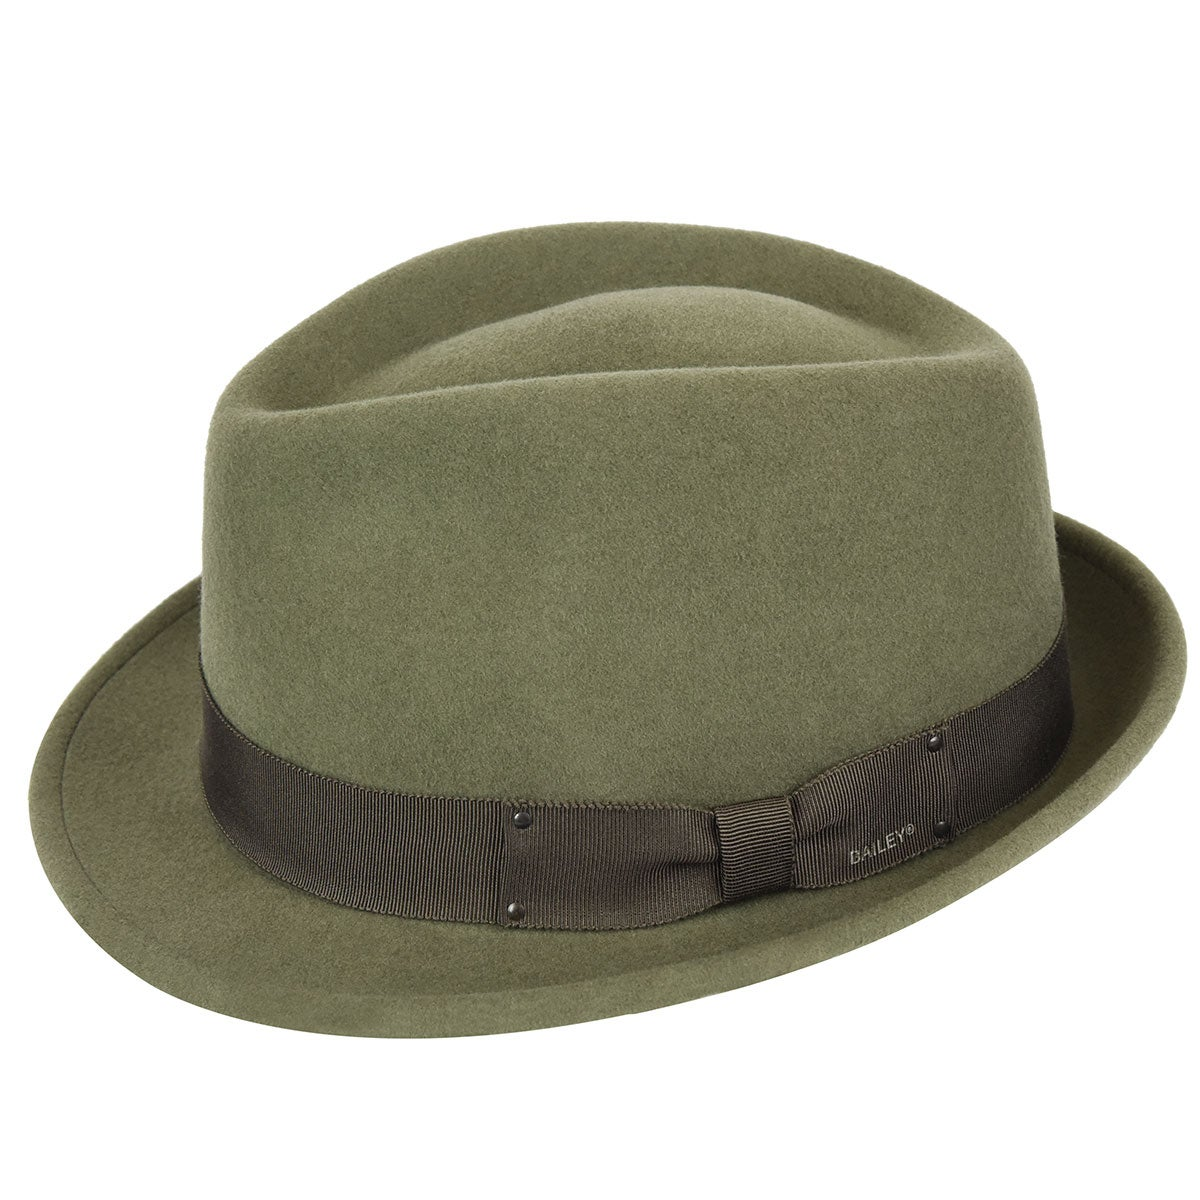 1960s – 70s Style Men's Hats Wynn LiteFelt Fedora $69.75 AT vintagedancer.com